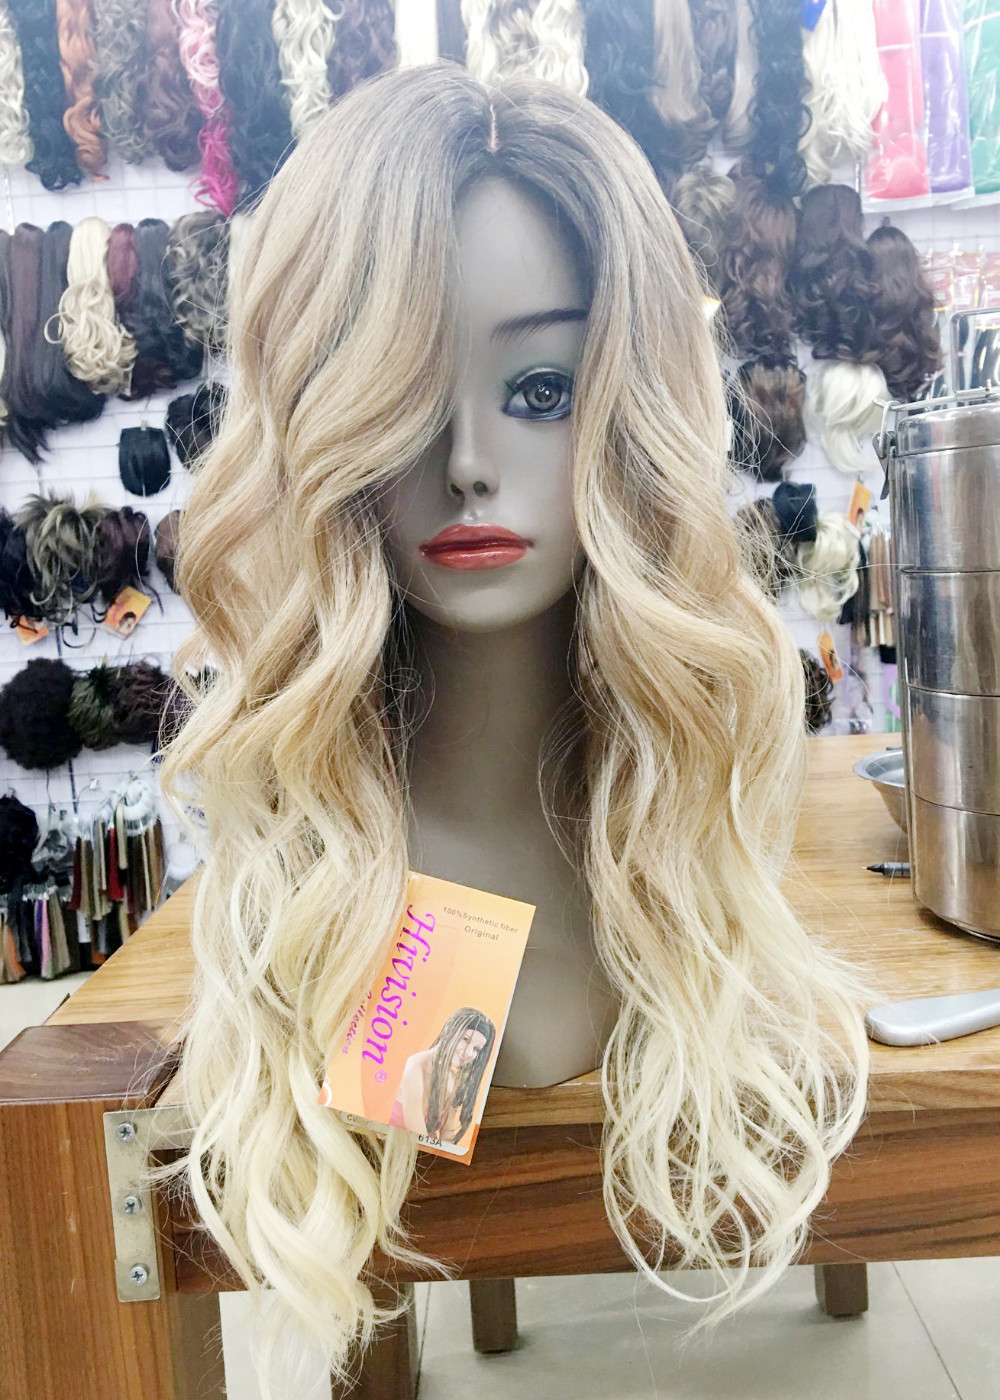 Beautiful Hot Heat Resistant Ombre Wig Curly Fashion Wig Long Blonde With Dark Root Top Quality Hair Wigs Free Shipping